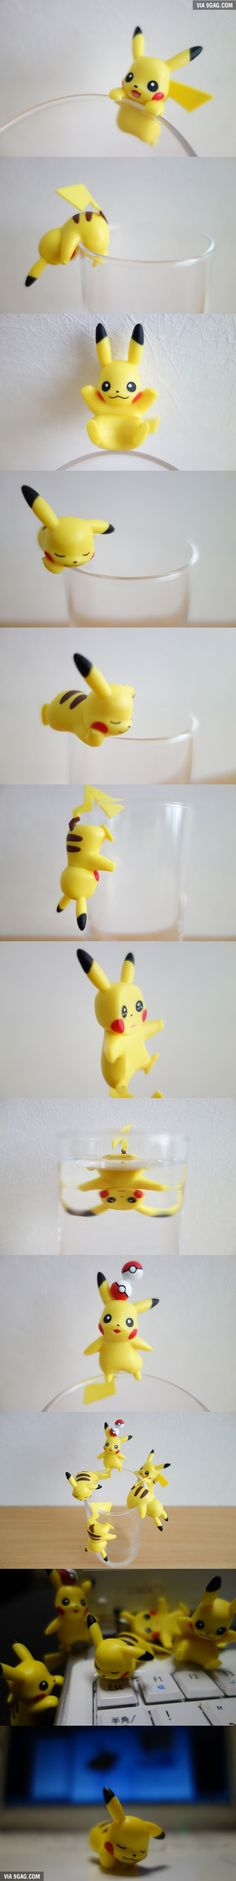 These Pikachus will cling to the side of your cup!